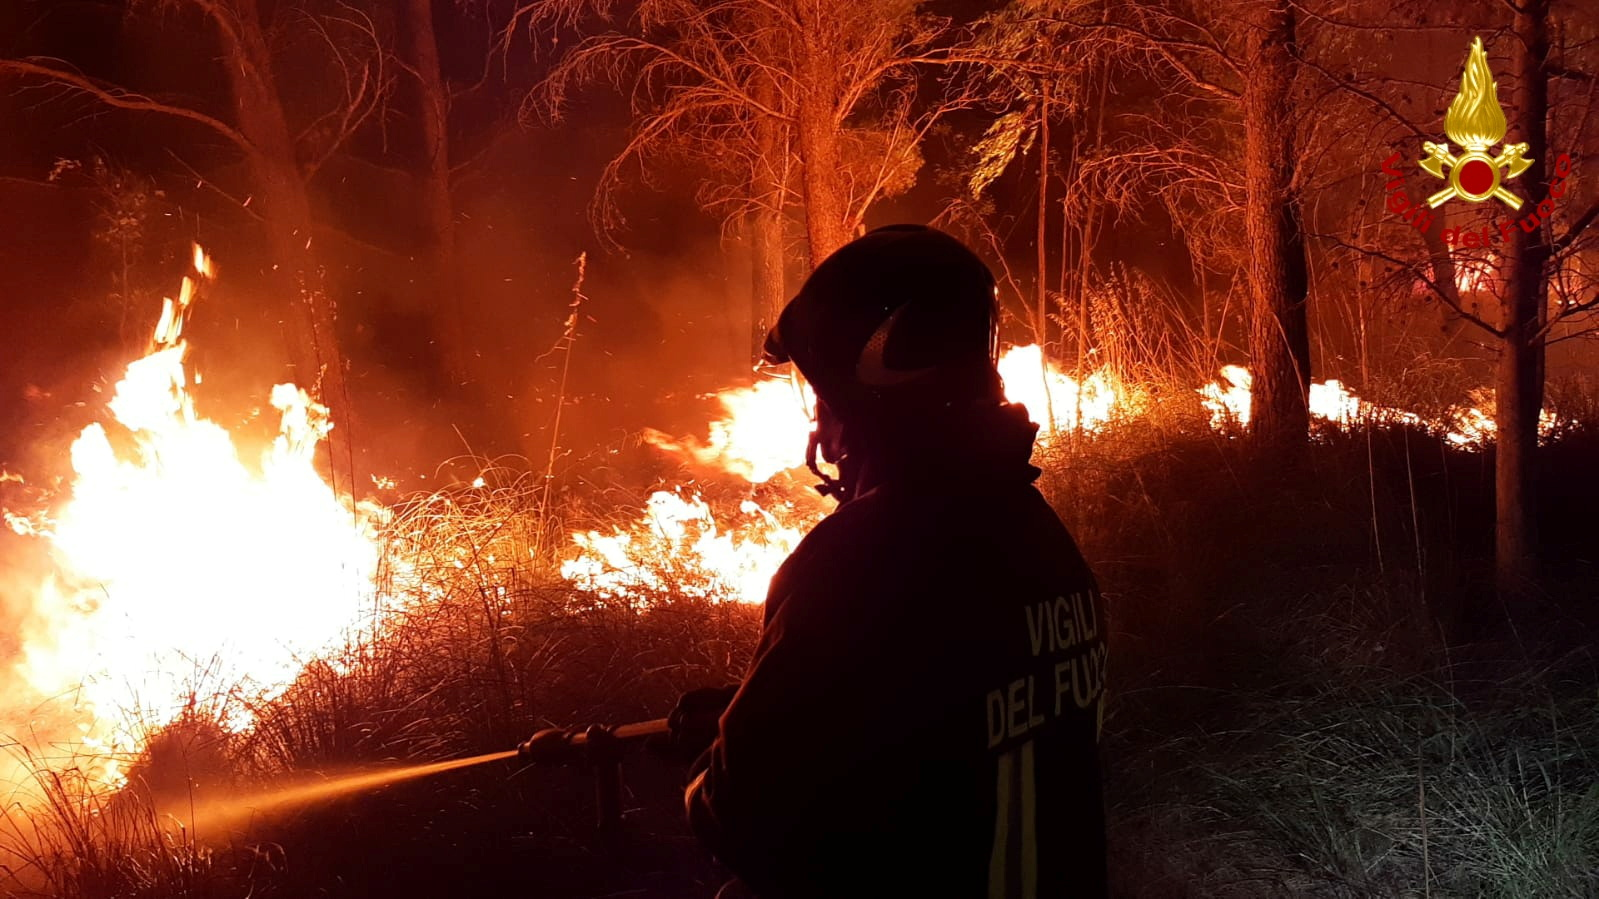 A firefighter battles the flames after a wildfire broke out near the Sicilian village of Erice, Italy July 26, 2021. Vigili del Fuoco/Handout via REUTERS